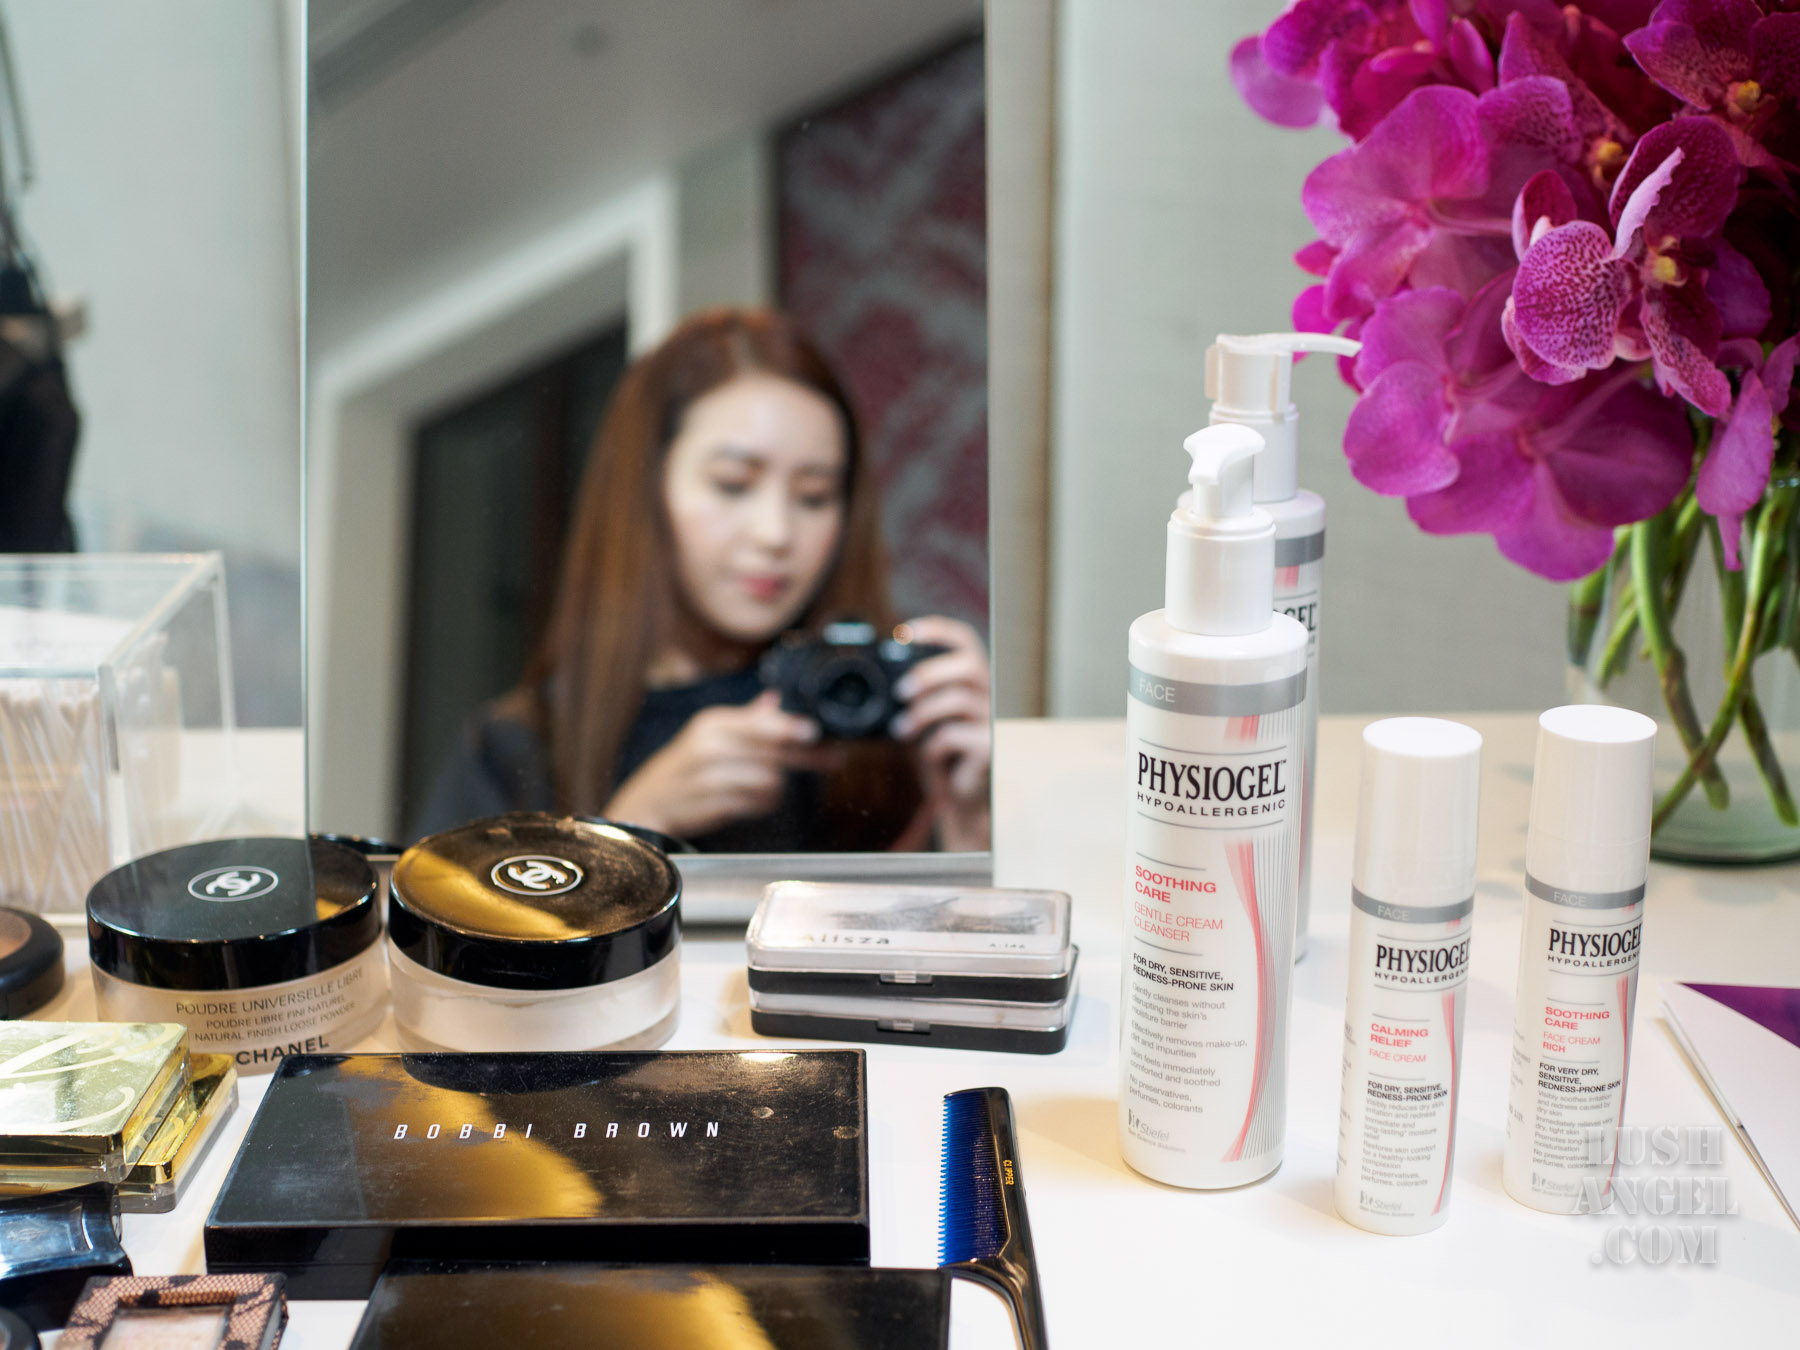 physiogel-calming-relief-bangkok-makeover